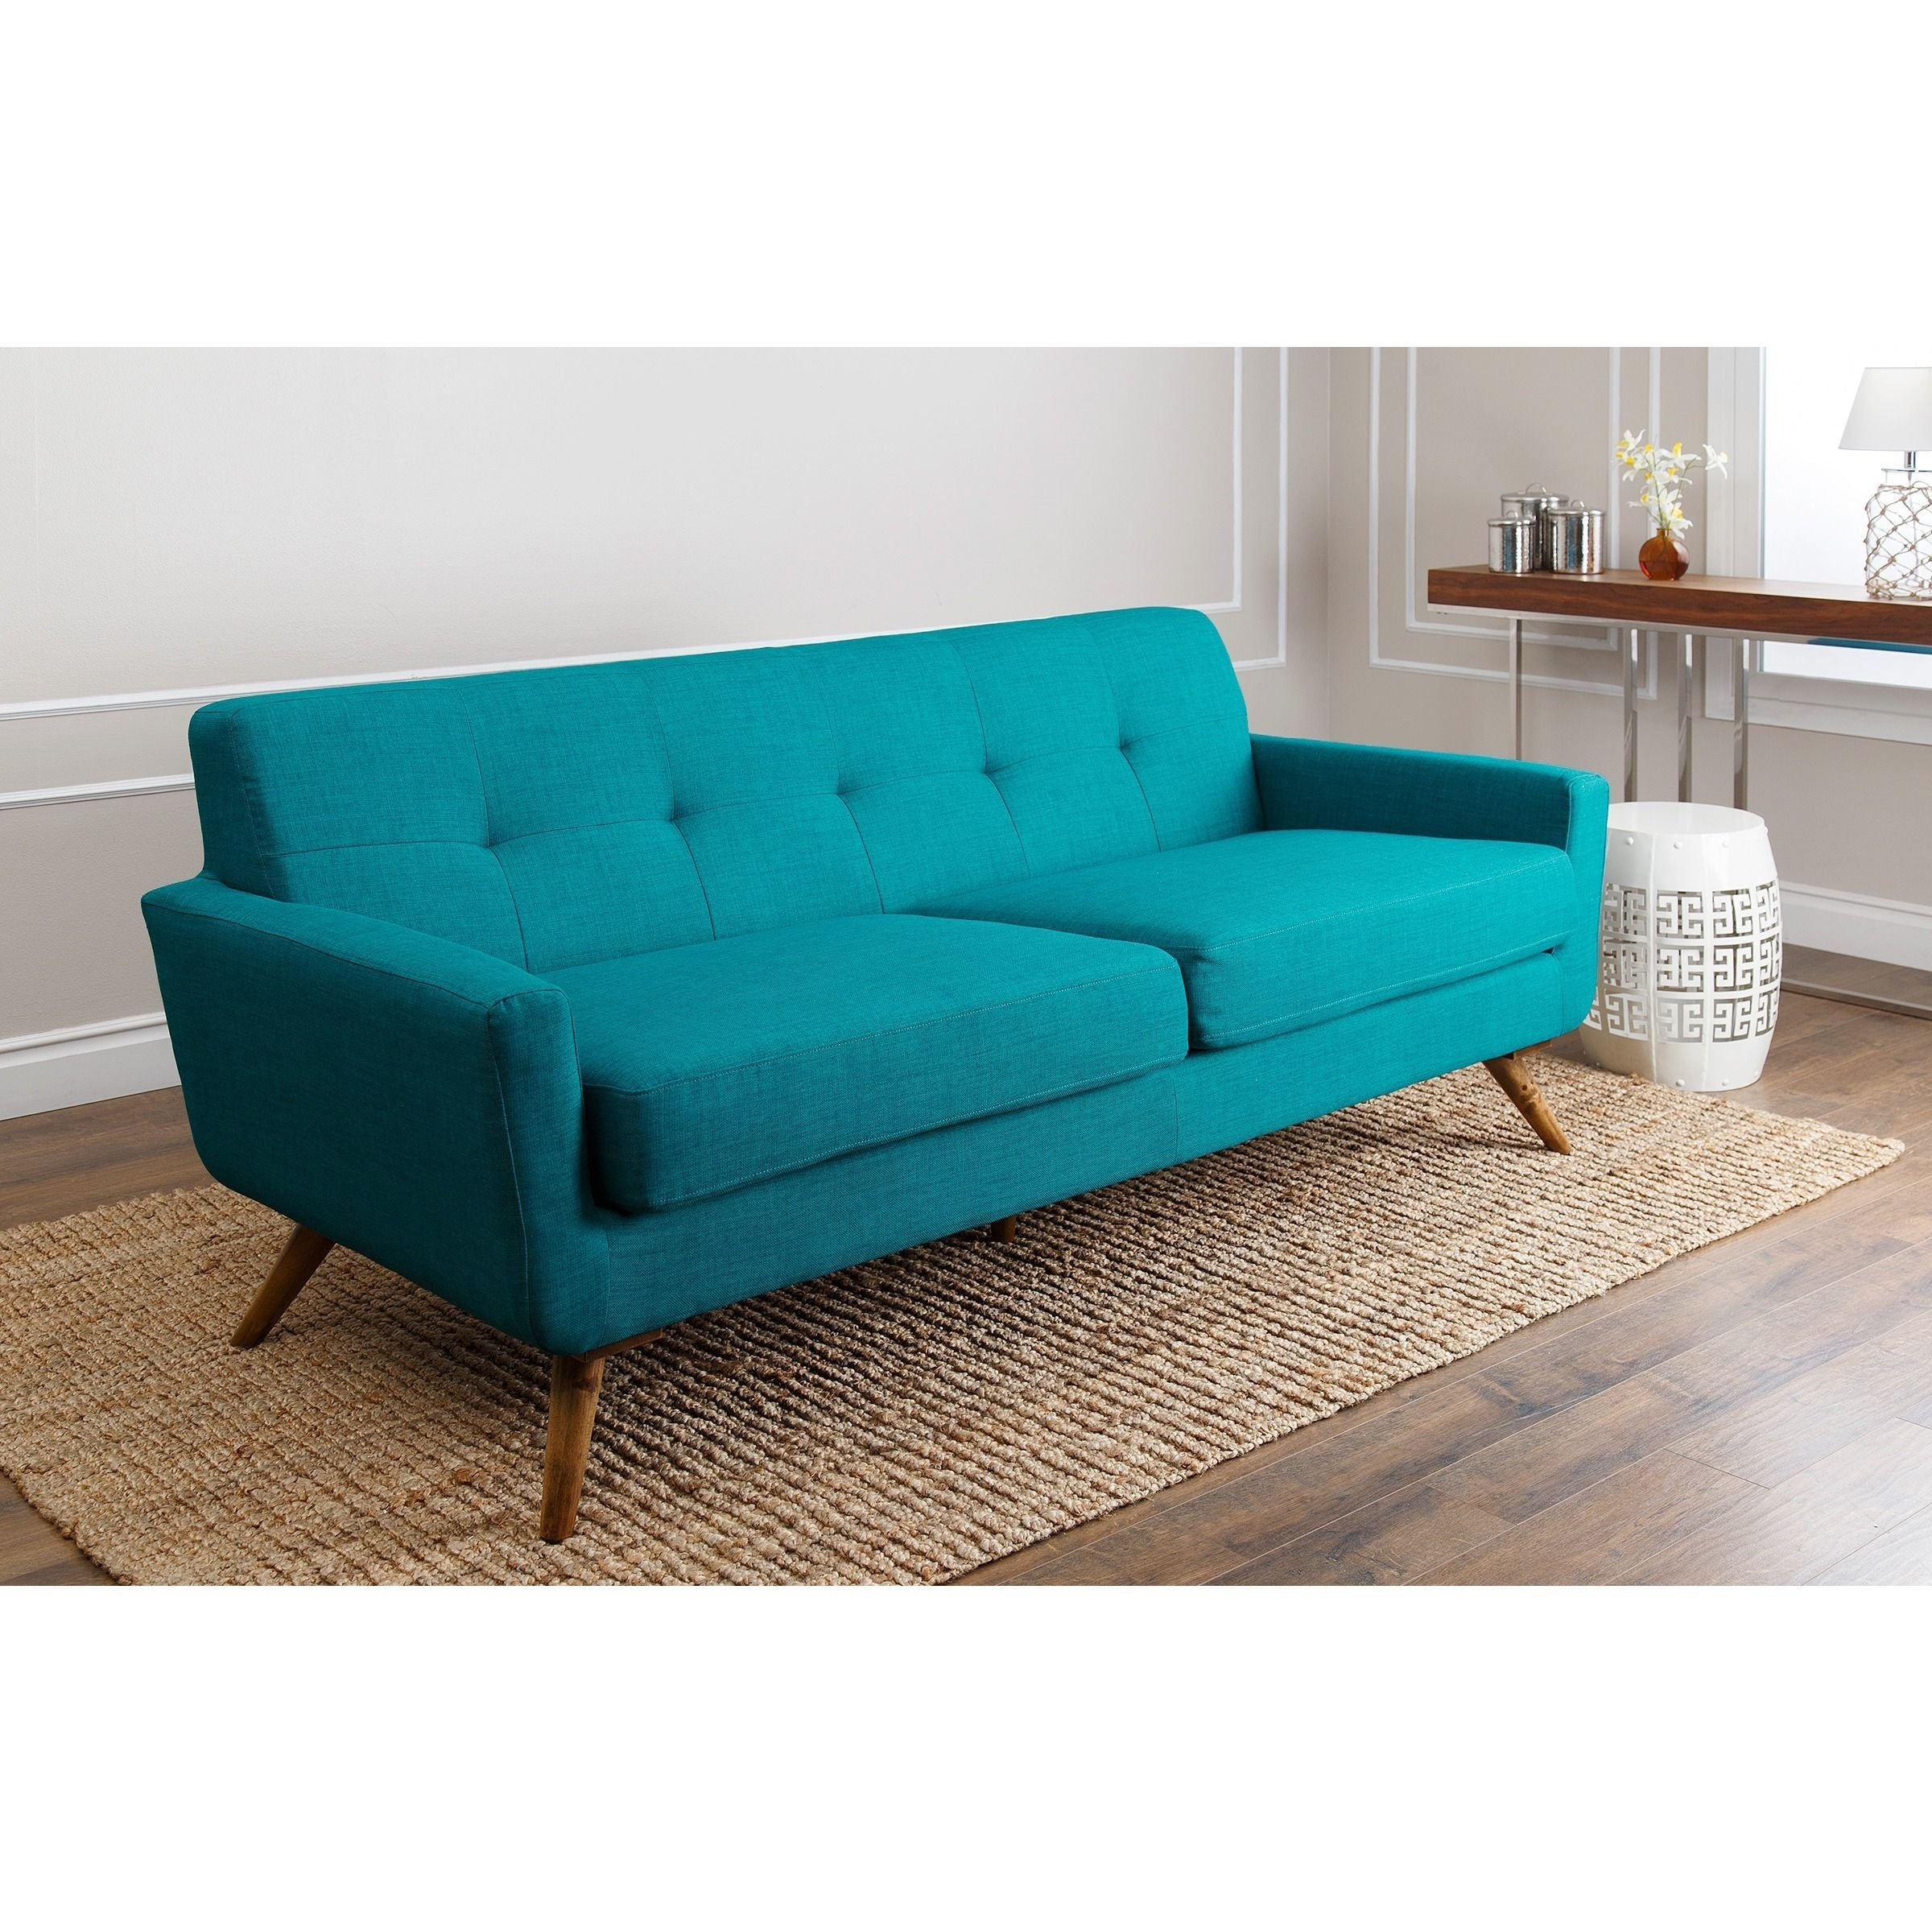 Update Your Home With Modern Style Thanks To This Petrol Blue Sofa